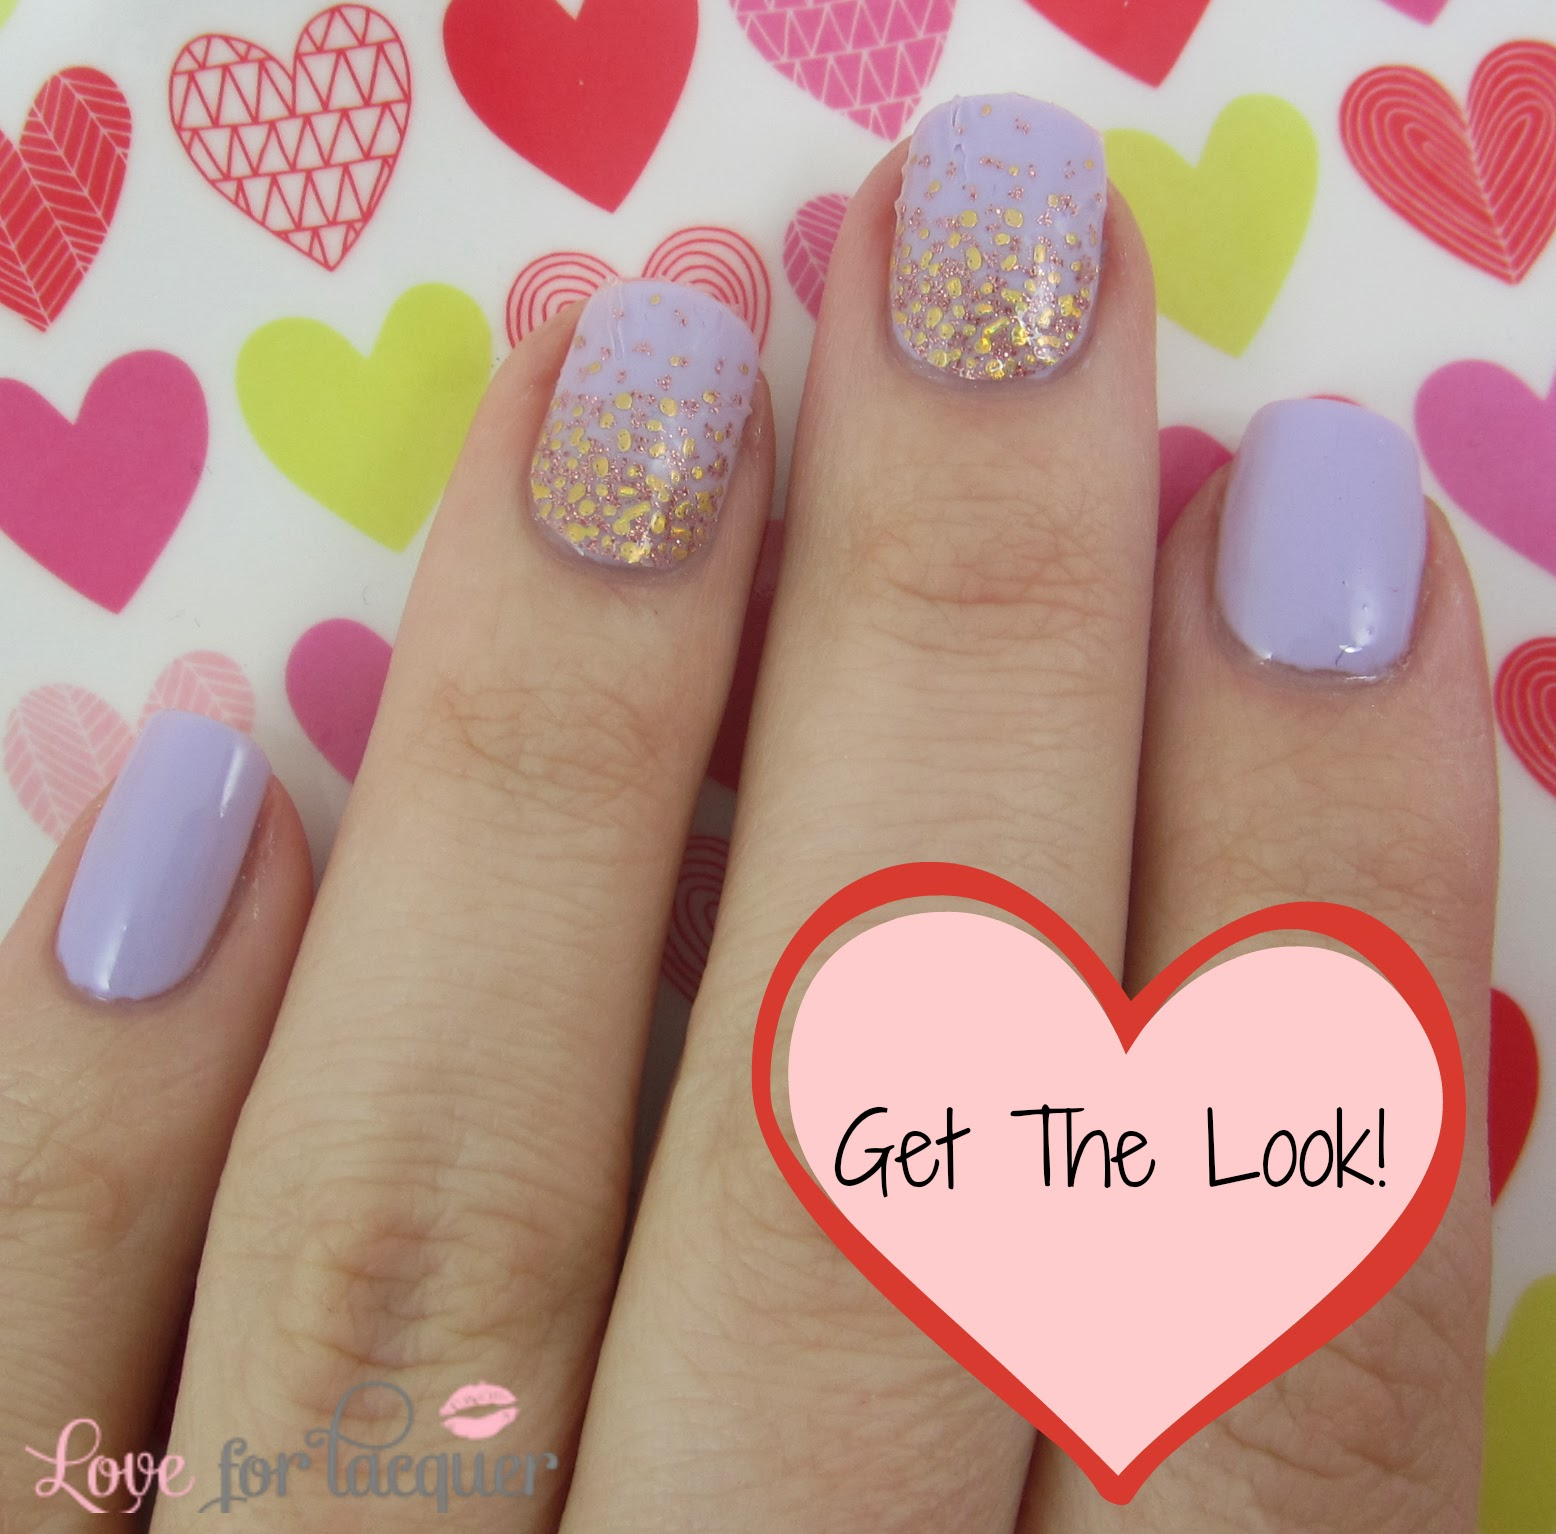 Makeup Tutorials : Create A Gorgeous Nail Look For Under $30! - Love ...